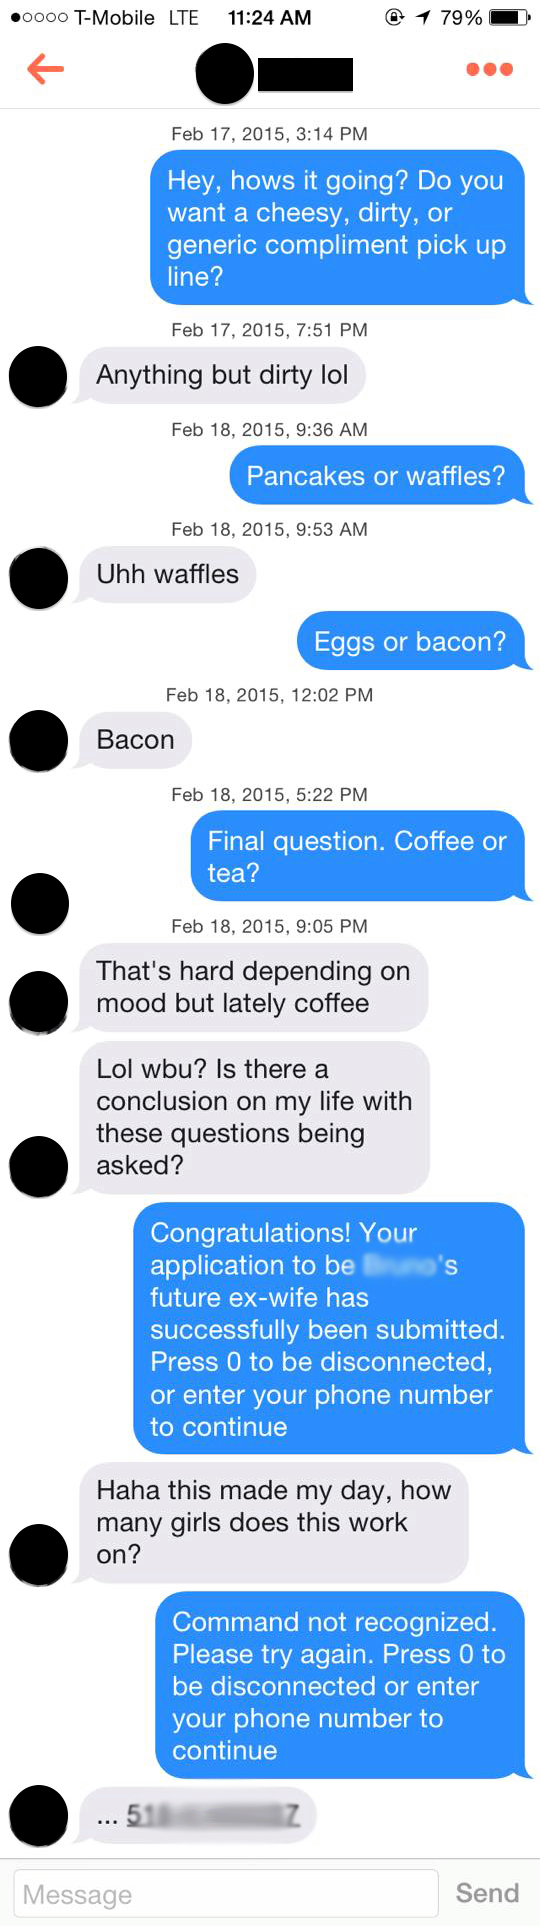 How to hack tinder